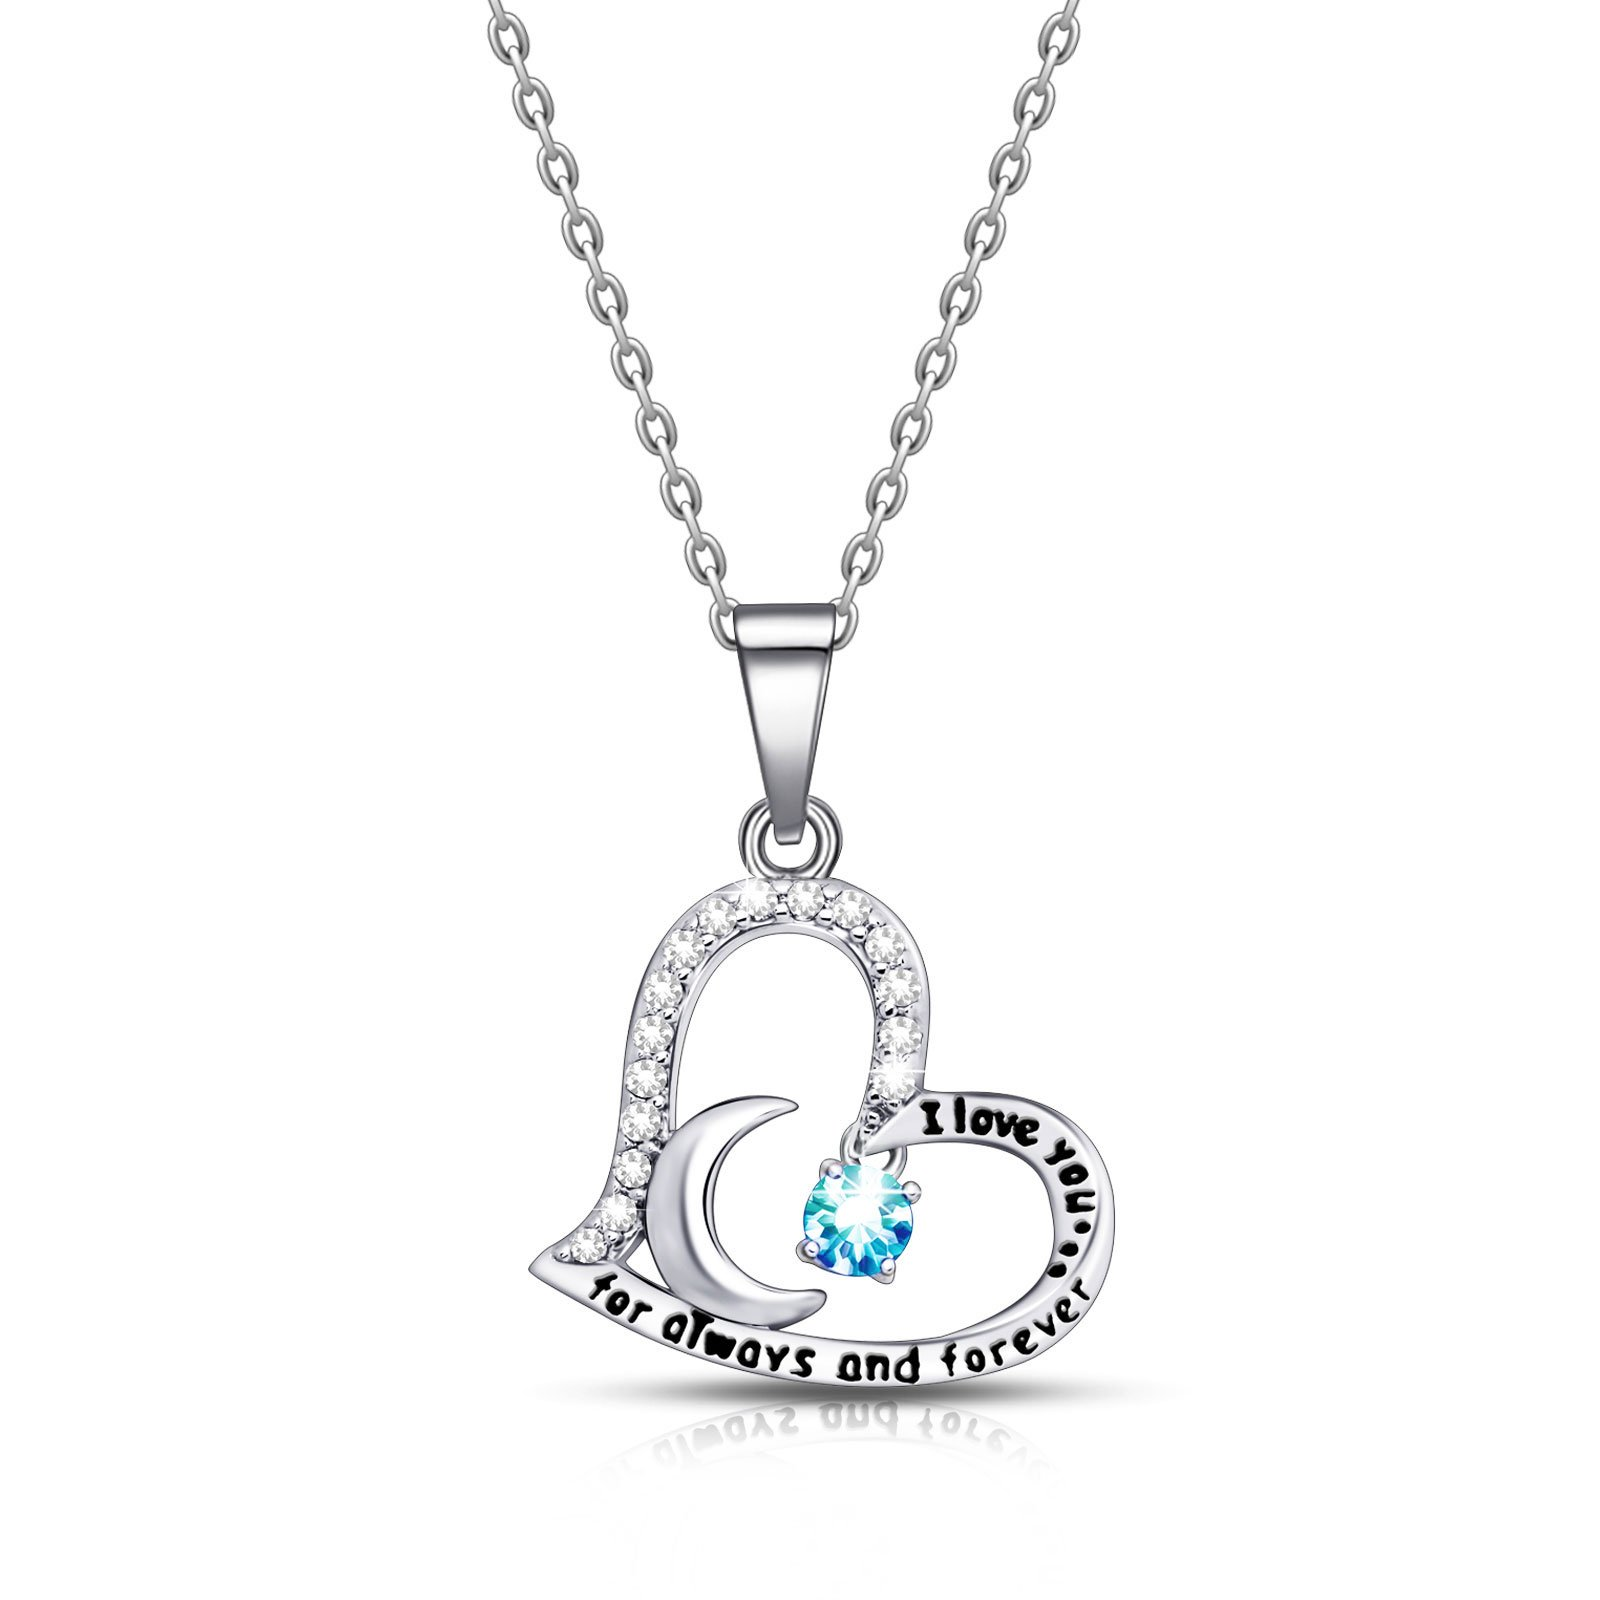 ivyAnan Jewellery Birthday Gift for Women I Love You Dancing Birthstone Aquamarine Necklace Jewelry Gift for Women Girls Daughter Wife (March)